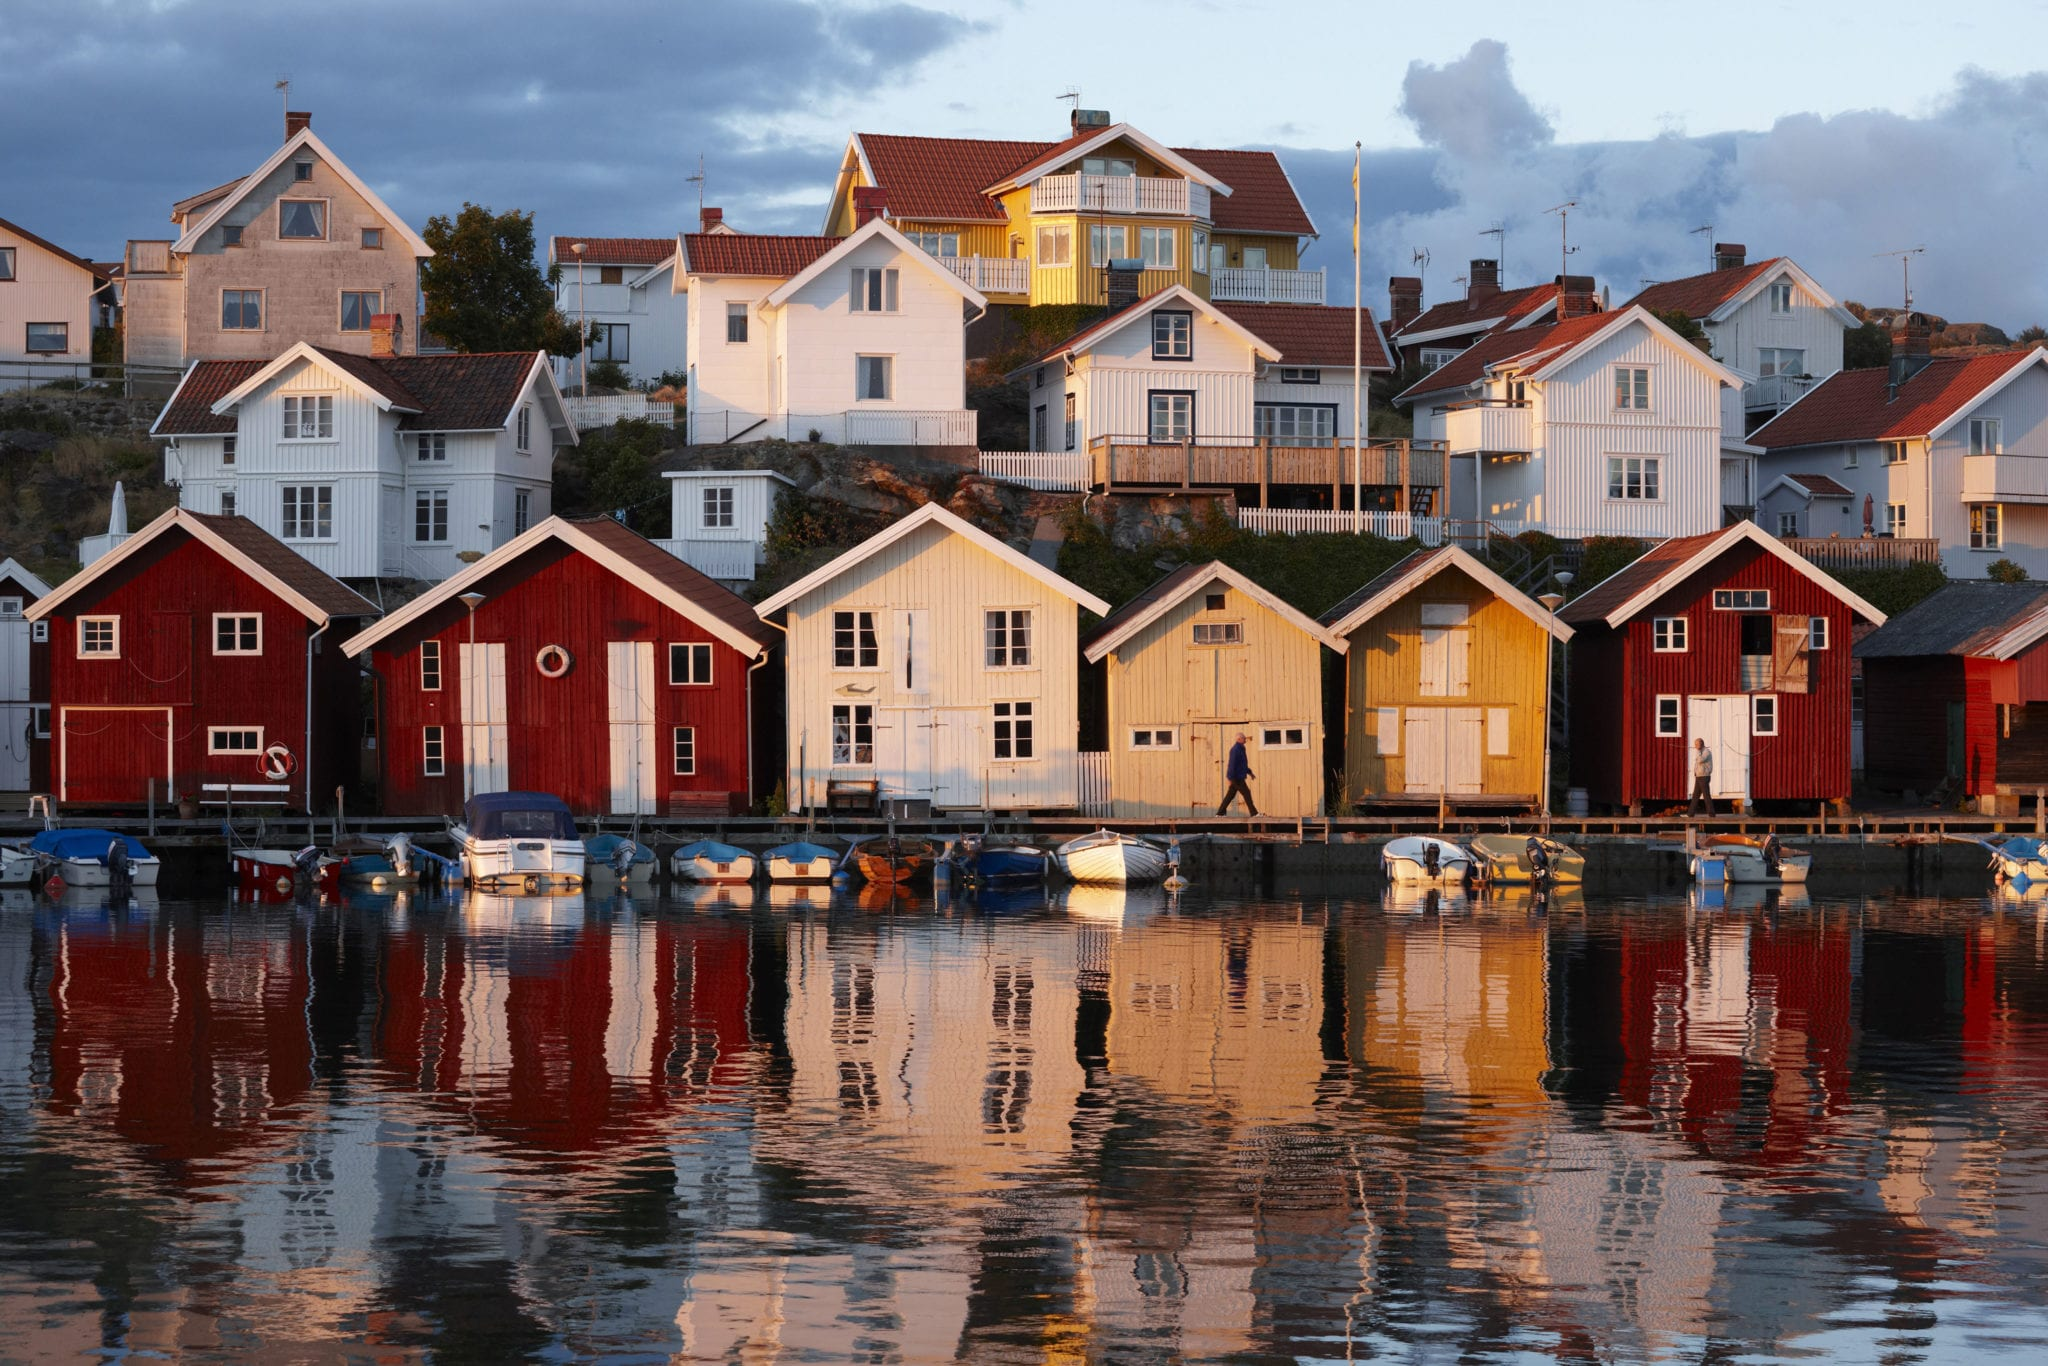 Houses by the sea at sunset, Sweden.